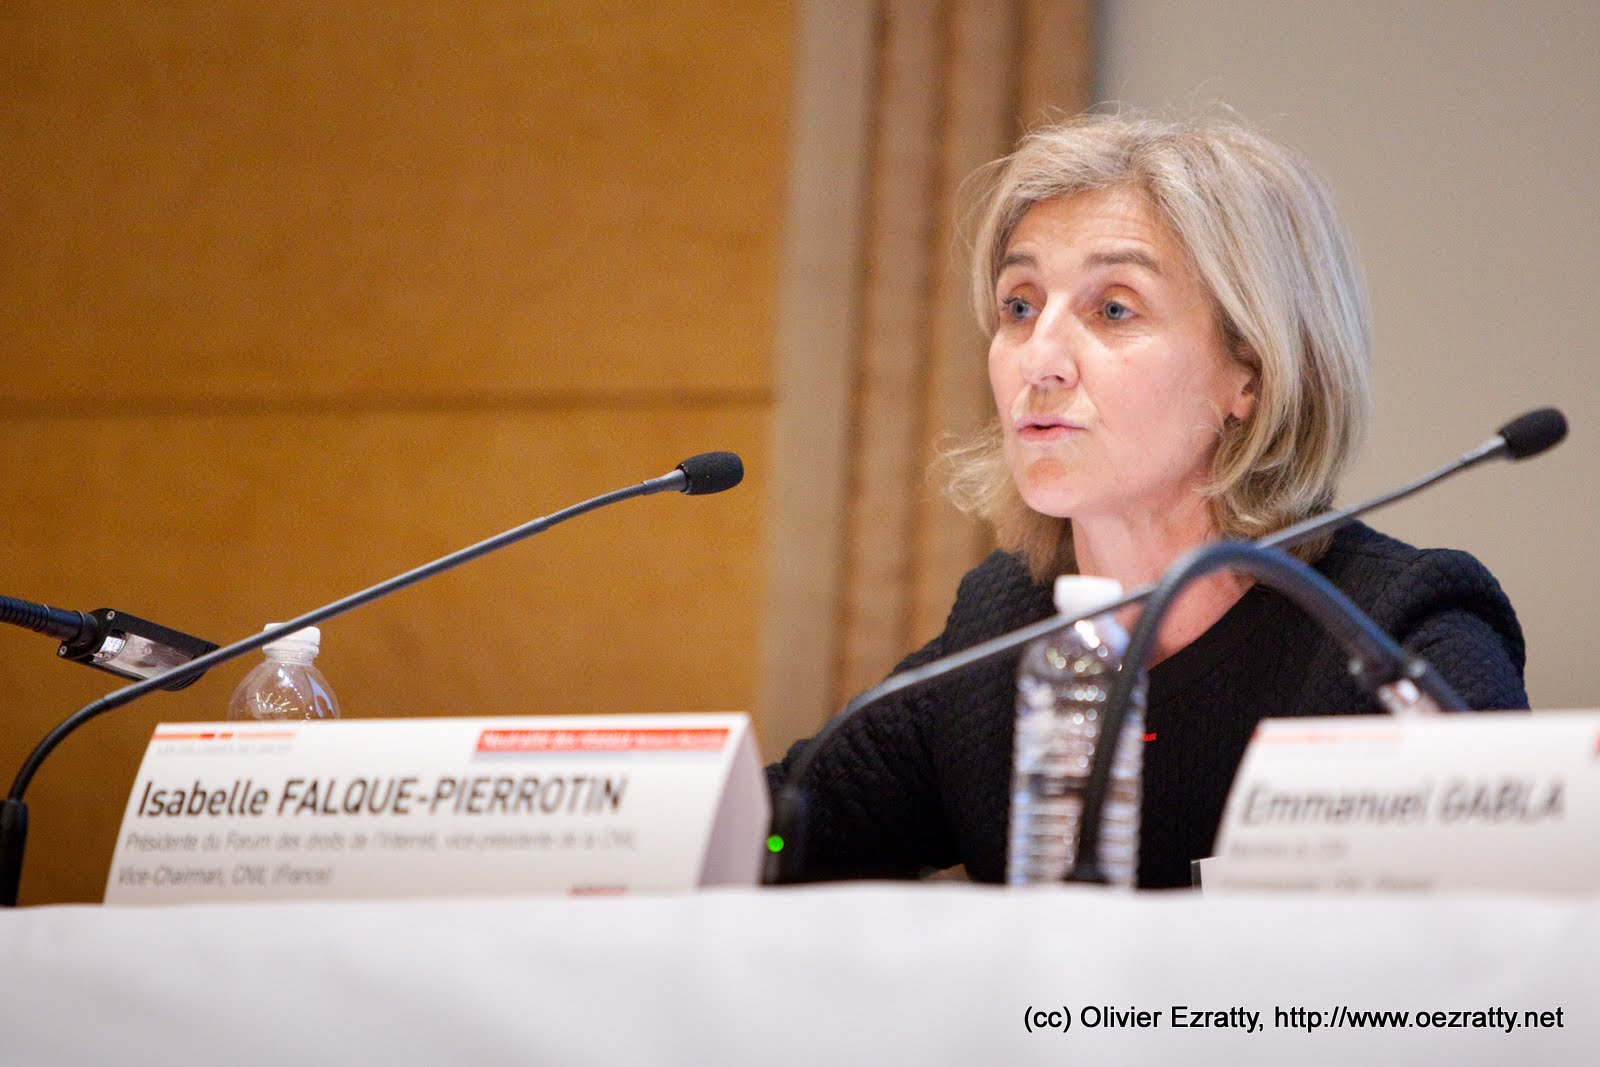 Isabelle Falque-Pierrotin, chair of the Article 29 working party and head of French data protection authority CNIL